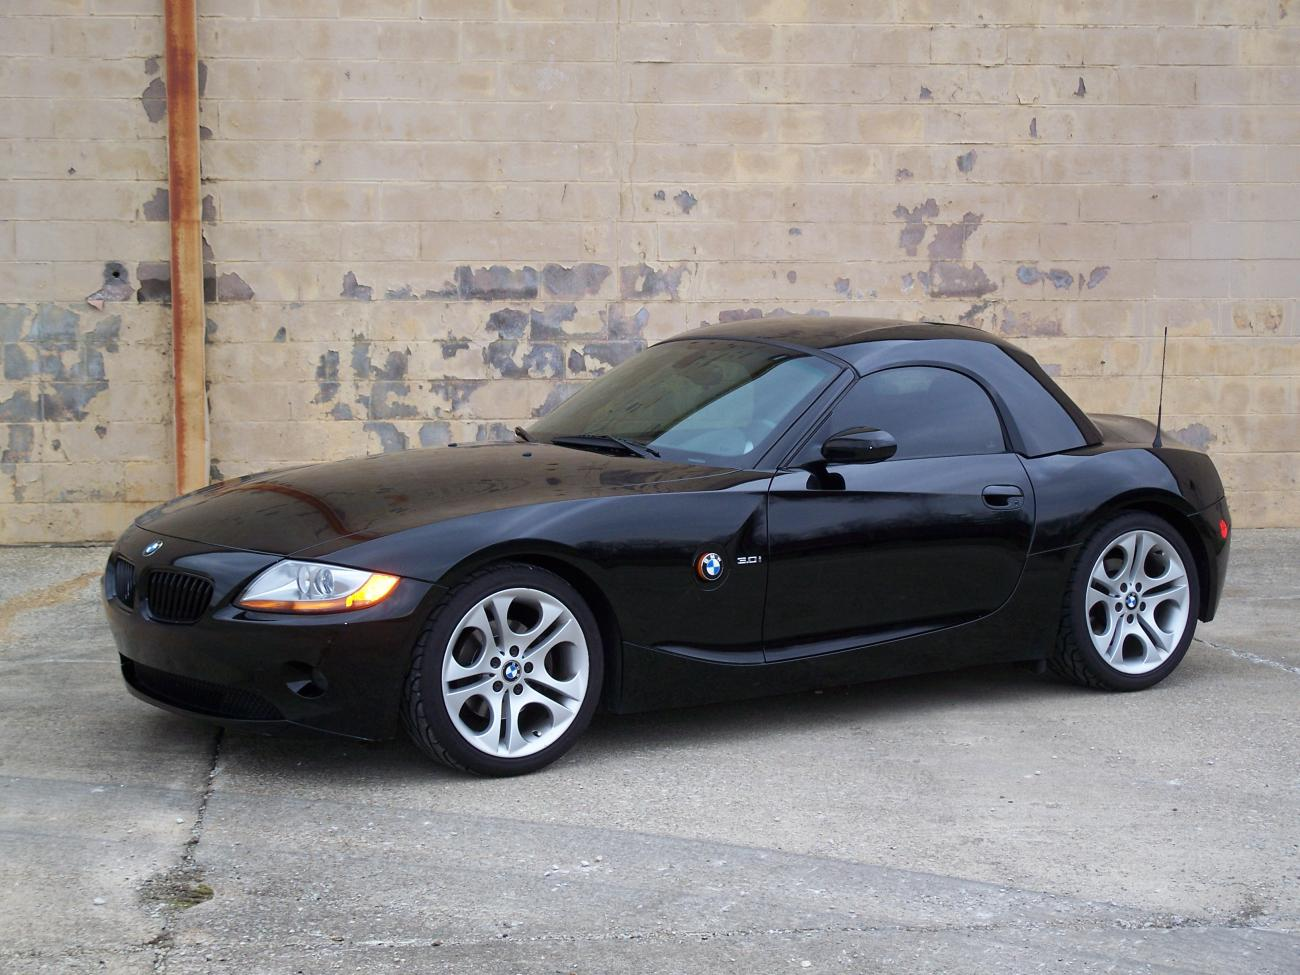 2003 bmw z4 3.0 all options, warranty until 2010, hard-top ...